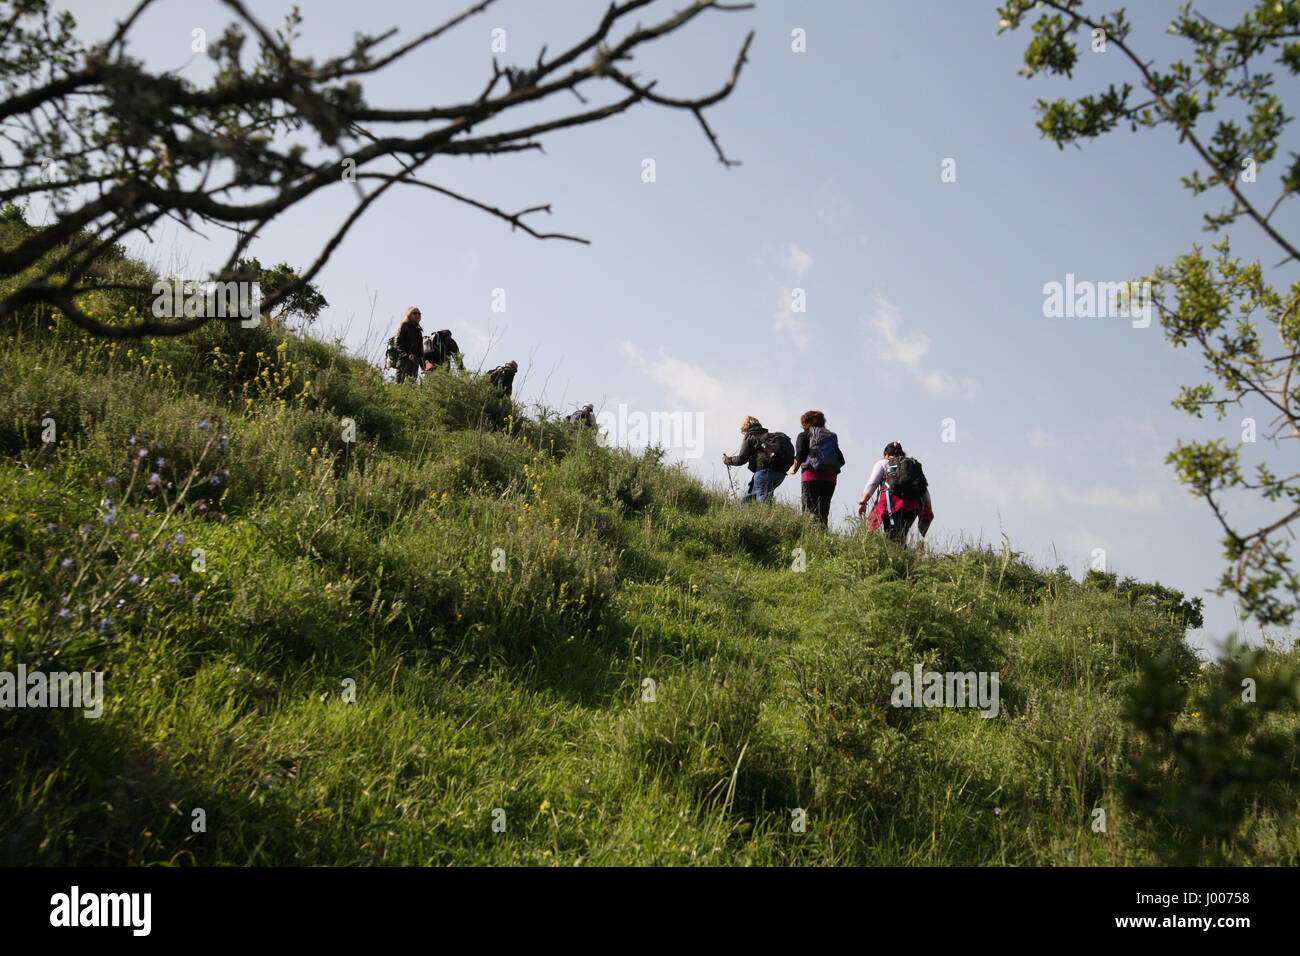 Senior citizen hikers on a strenuous climb of a steep hill during hiking in the shrubland. The Menashe Heights in - Stock Image